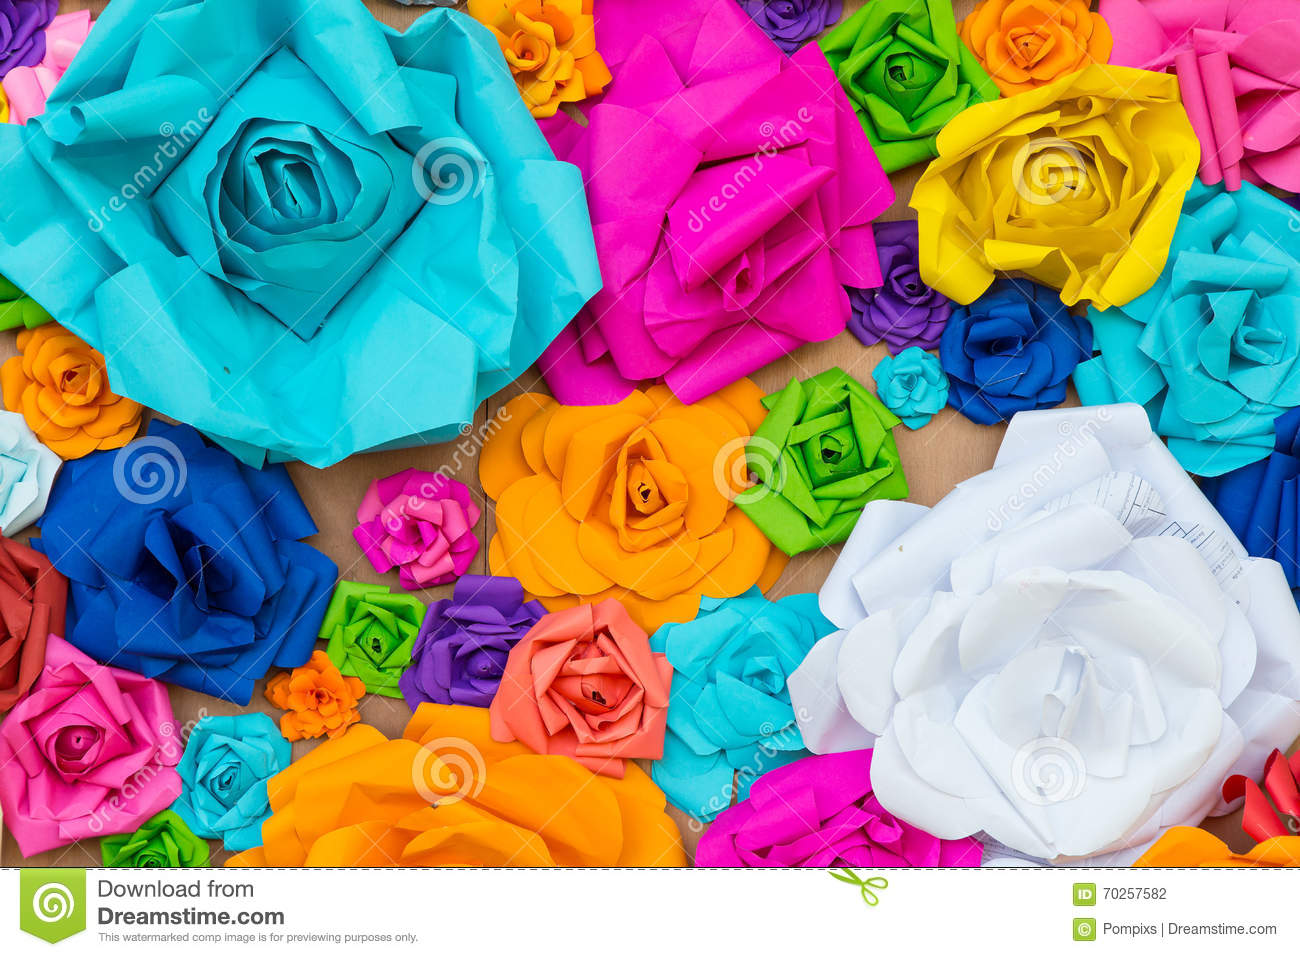 abstract wallpaper rainbow colorful rose flower paper